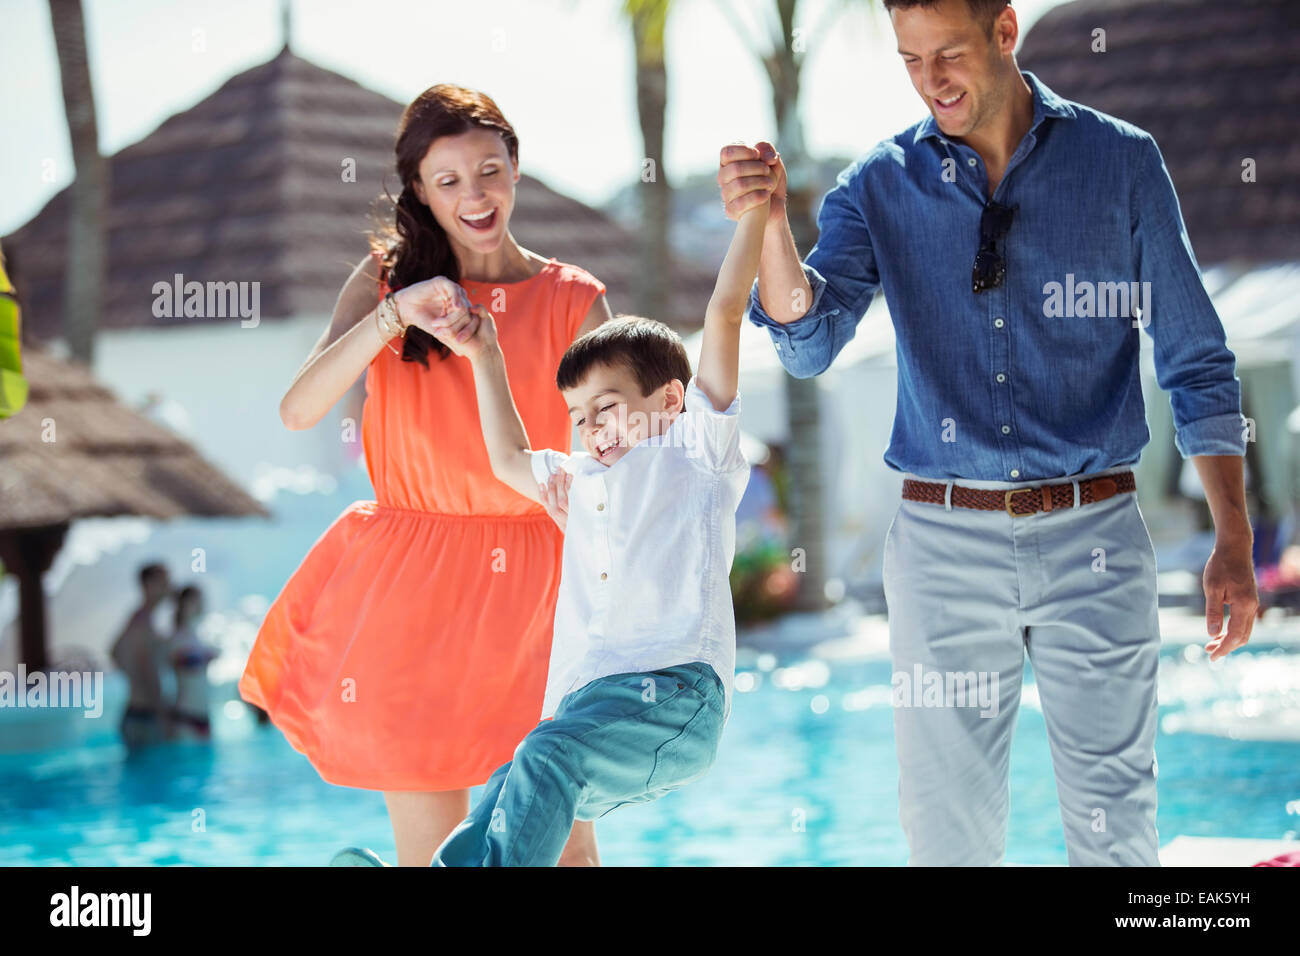 Little boy having fun with his parents by swimming pool - Stock Image